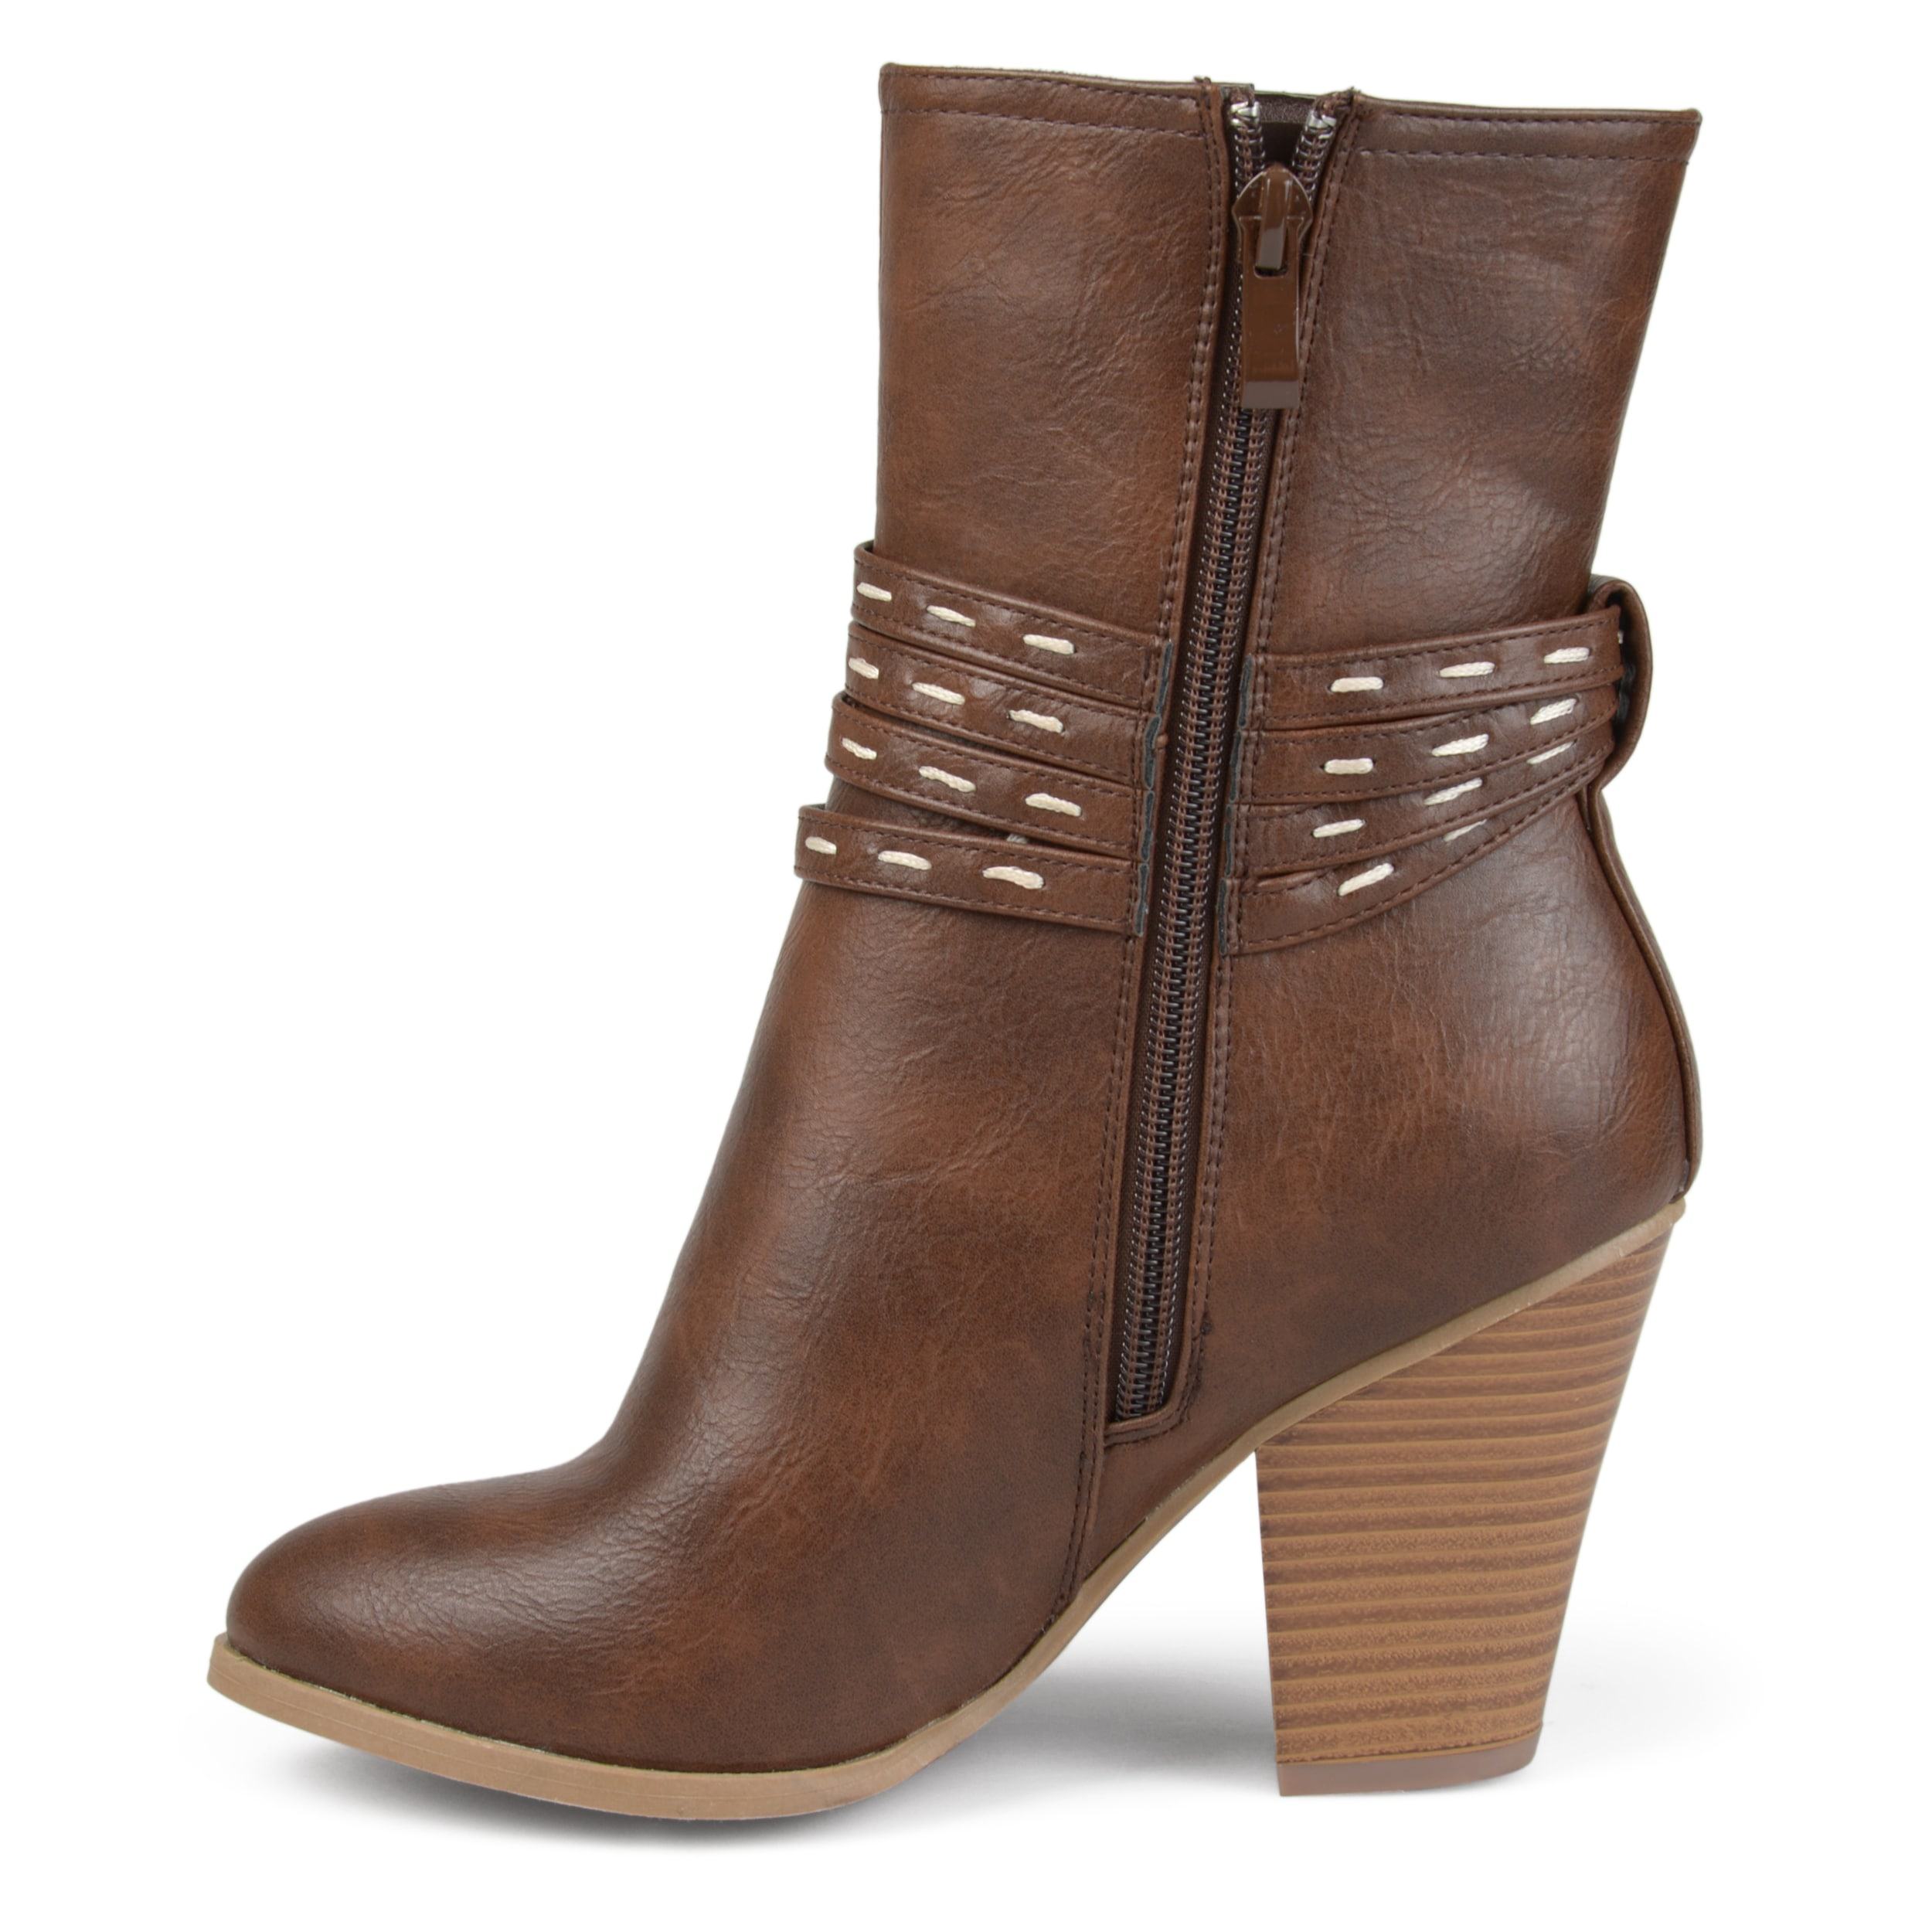 Journee Collection Larkyn ... Women's Ankle Boots vNs7FE